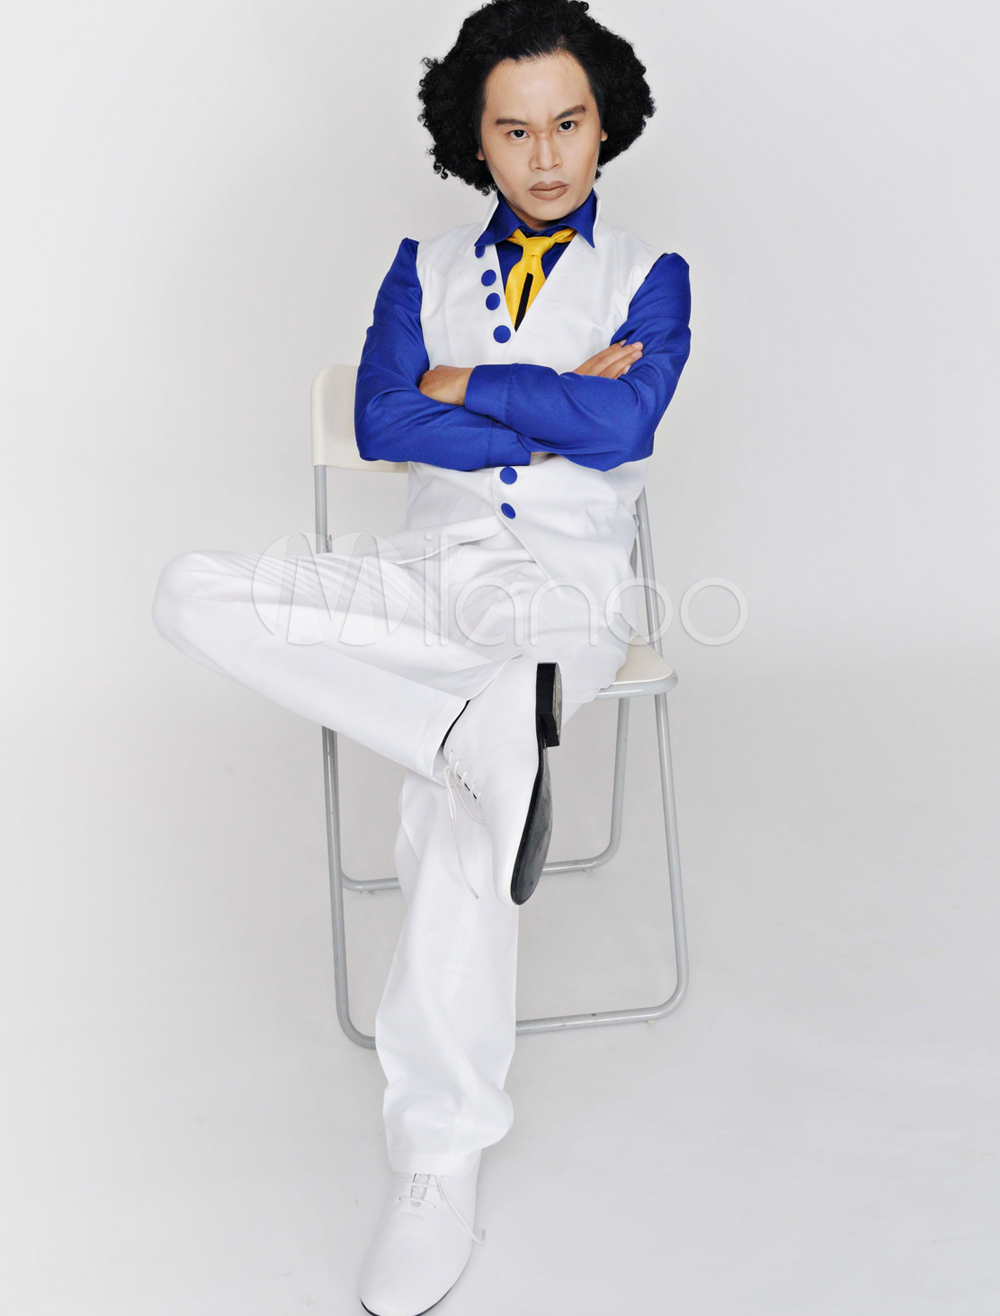 Buy One Piece Film Strong World Aokiji Cosplay Costume One Piece Marines Cosplay Halloween for $80.99 in Milanoo store